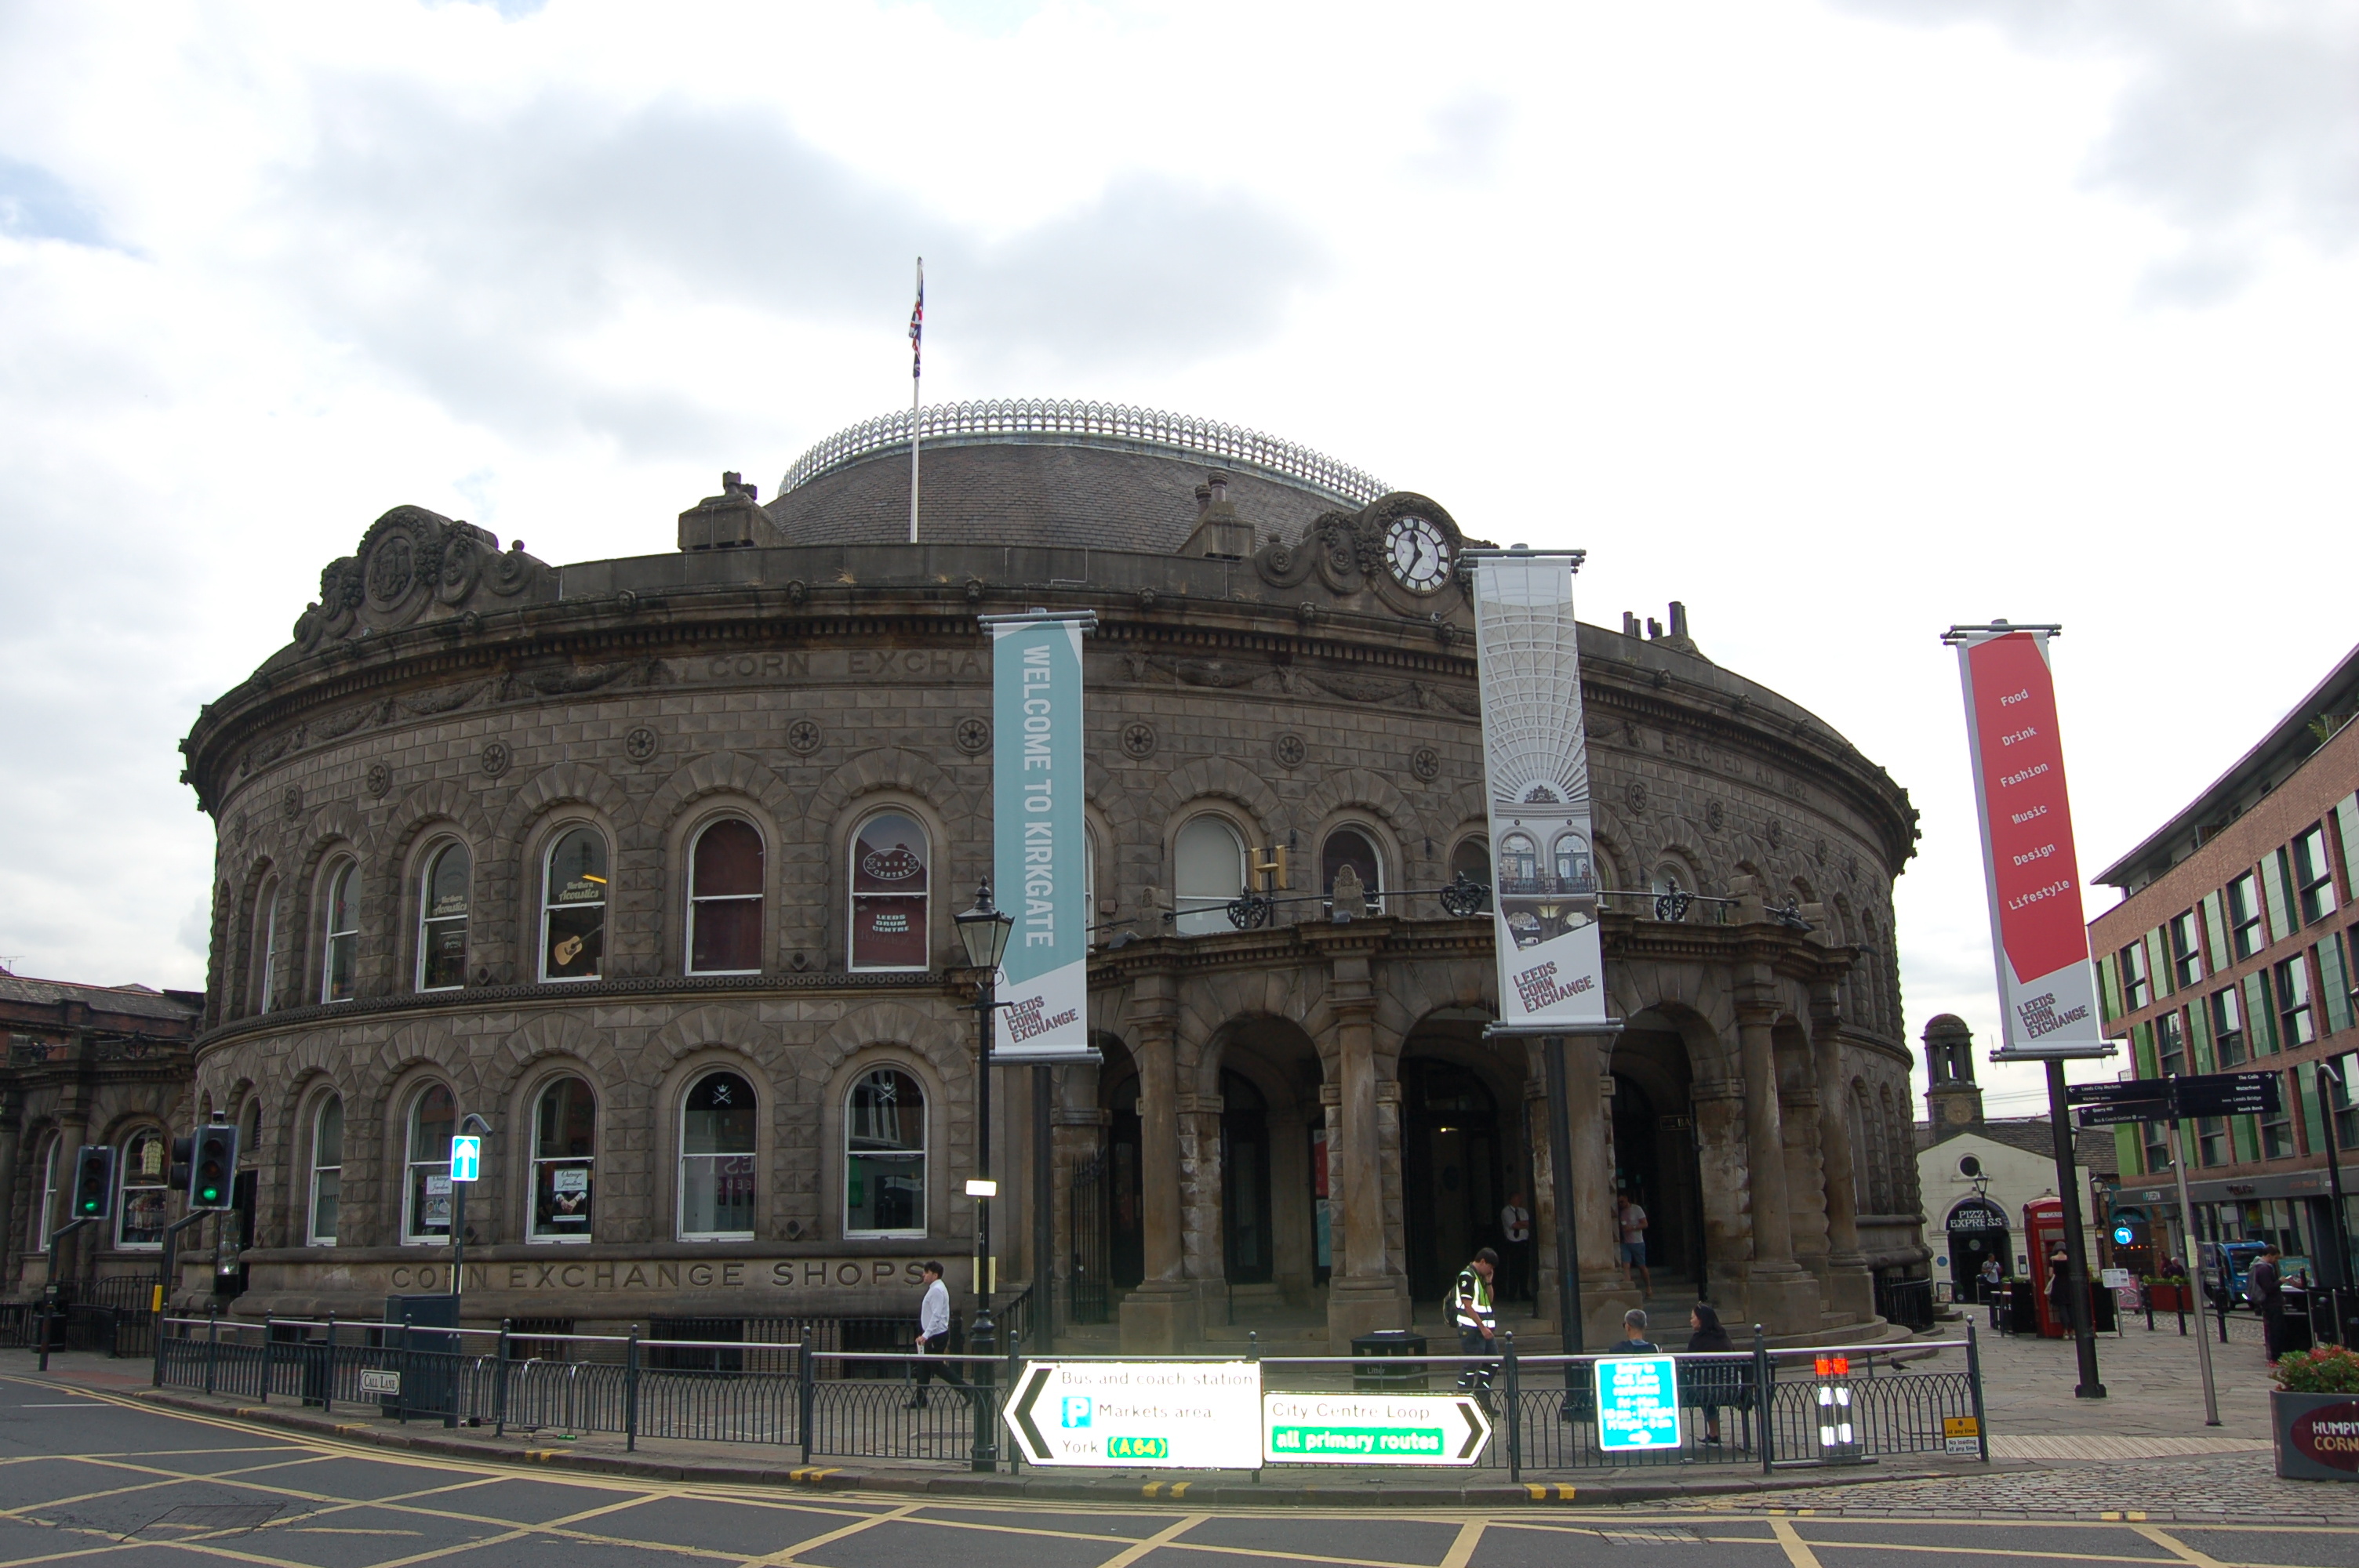 Contemporary photograph of the outside of the Corn Exchange, which is a round shaped building with a domed roof.